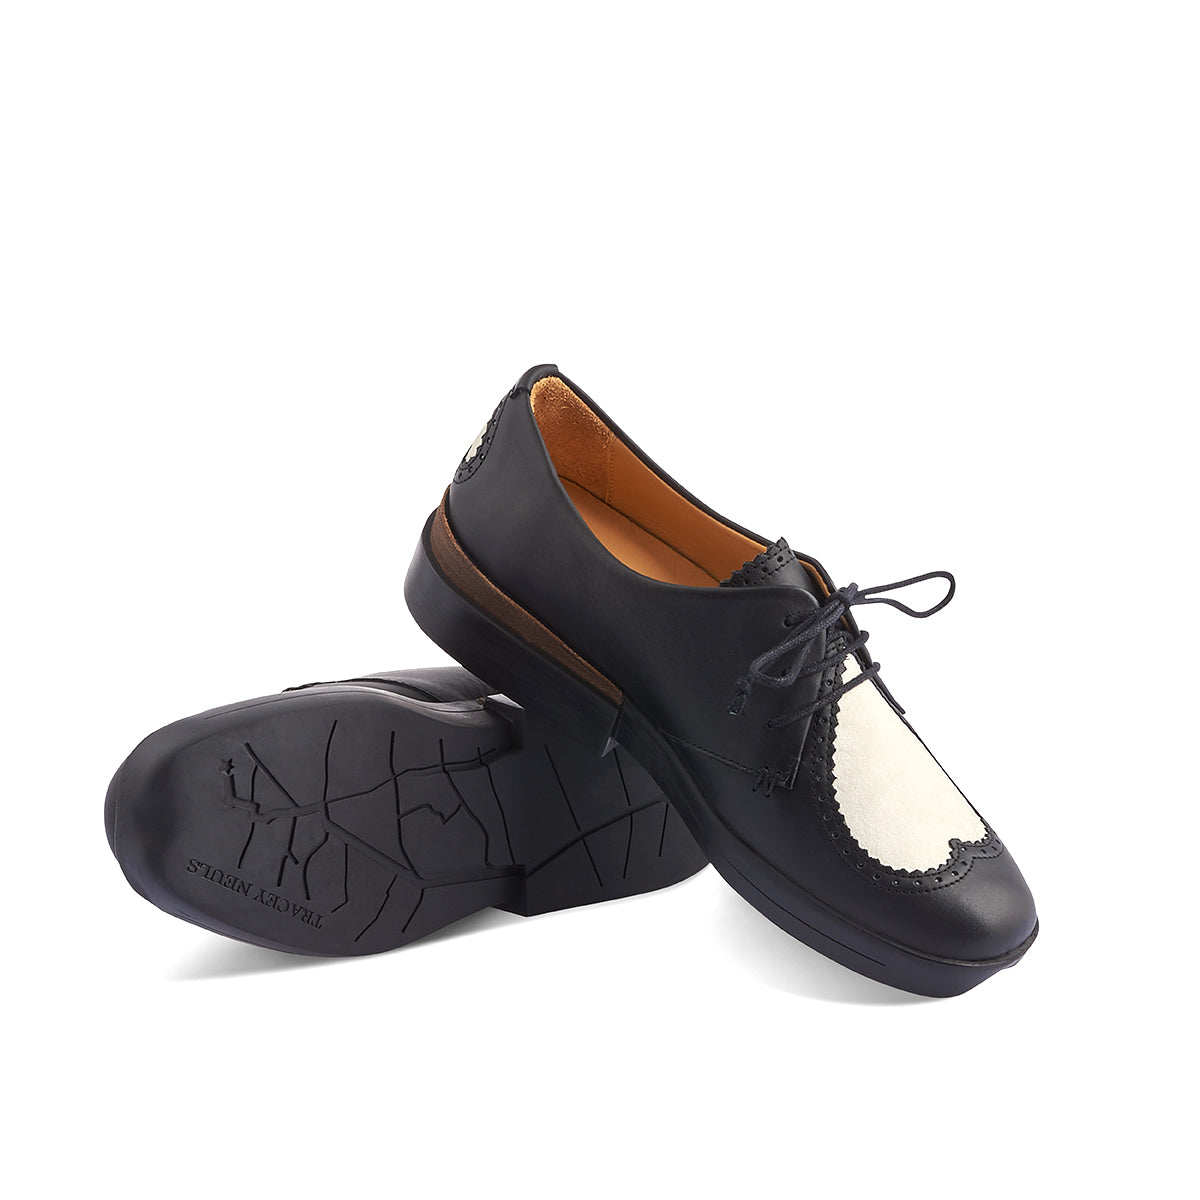 With an adorable velvet heart detail front and centre, Heart is delightful contemporary Derby by Tracey Neuls with a luscious black leather upper. Set on a chunky yet lightweight and super-soft rubber sole, this lace-up is one of the most comfortable shoes you'll ever wear.